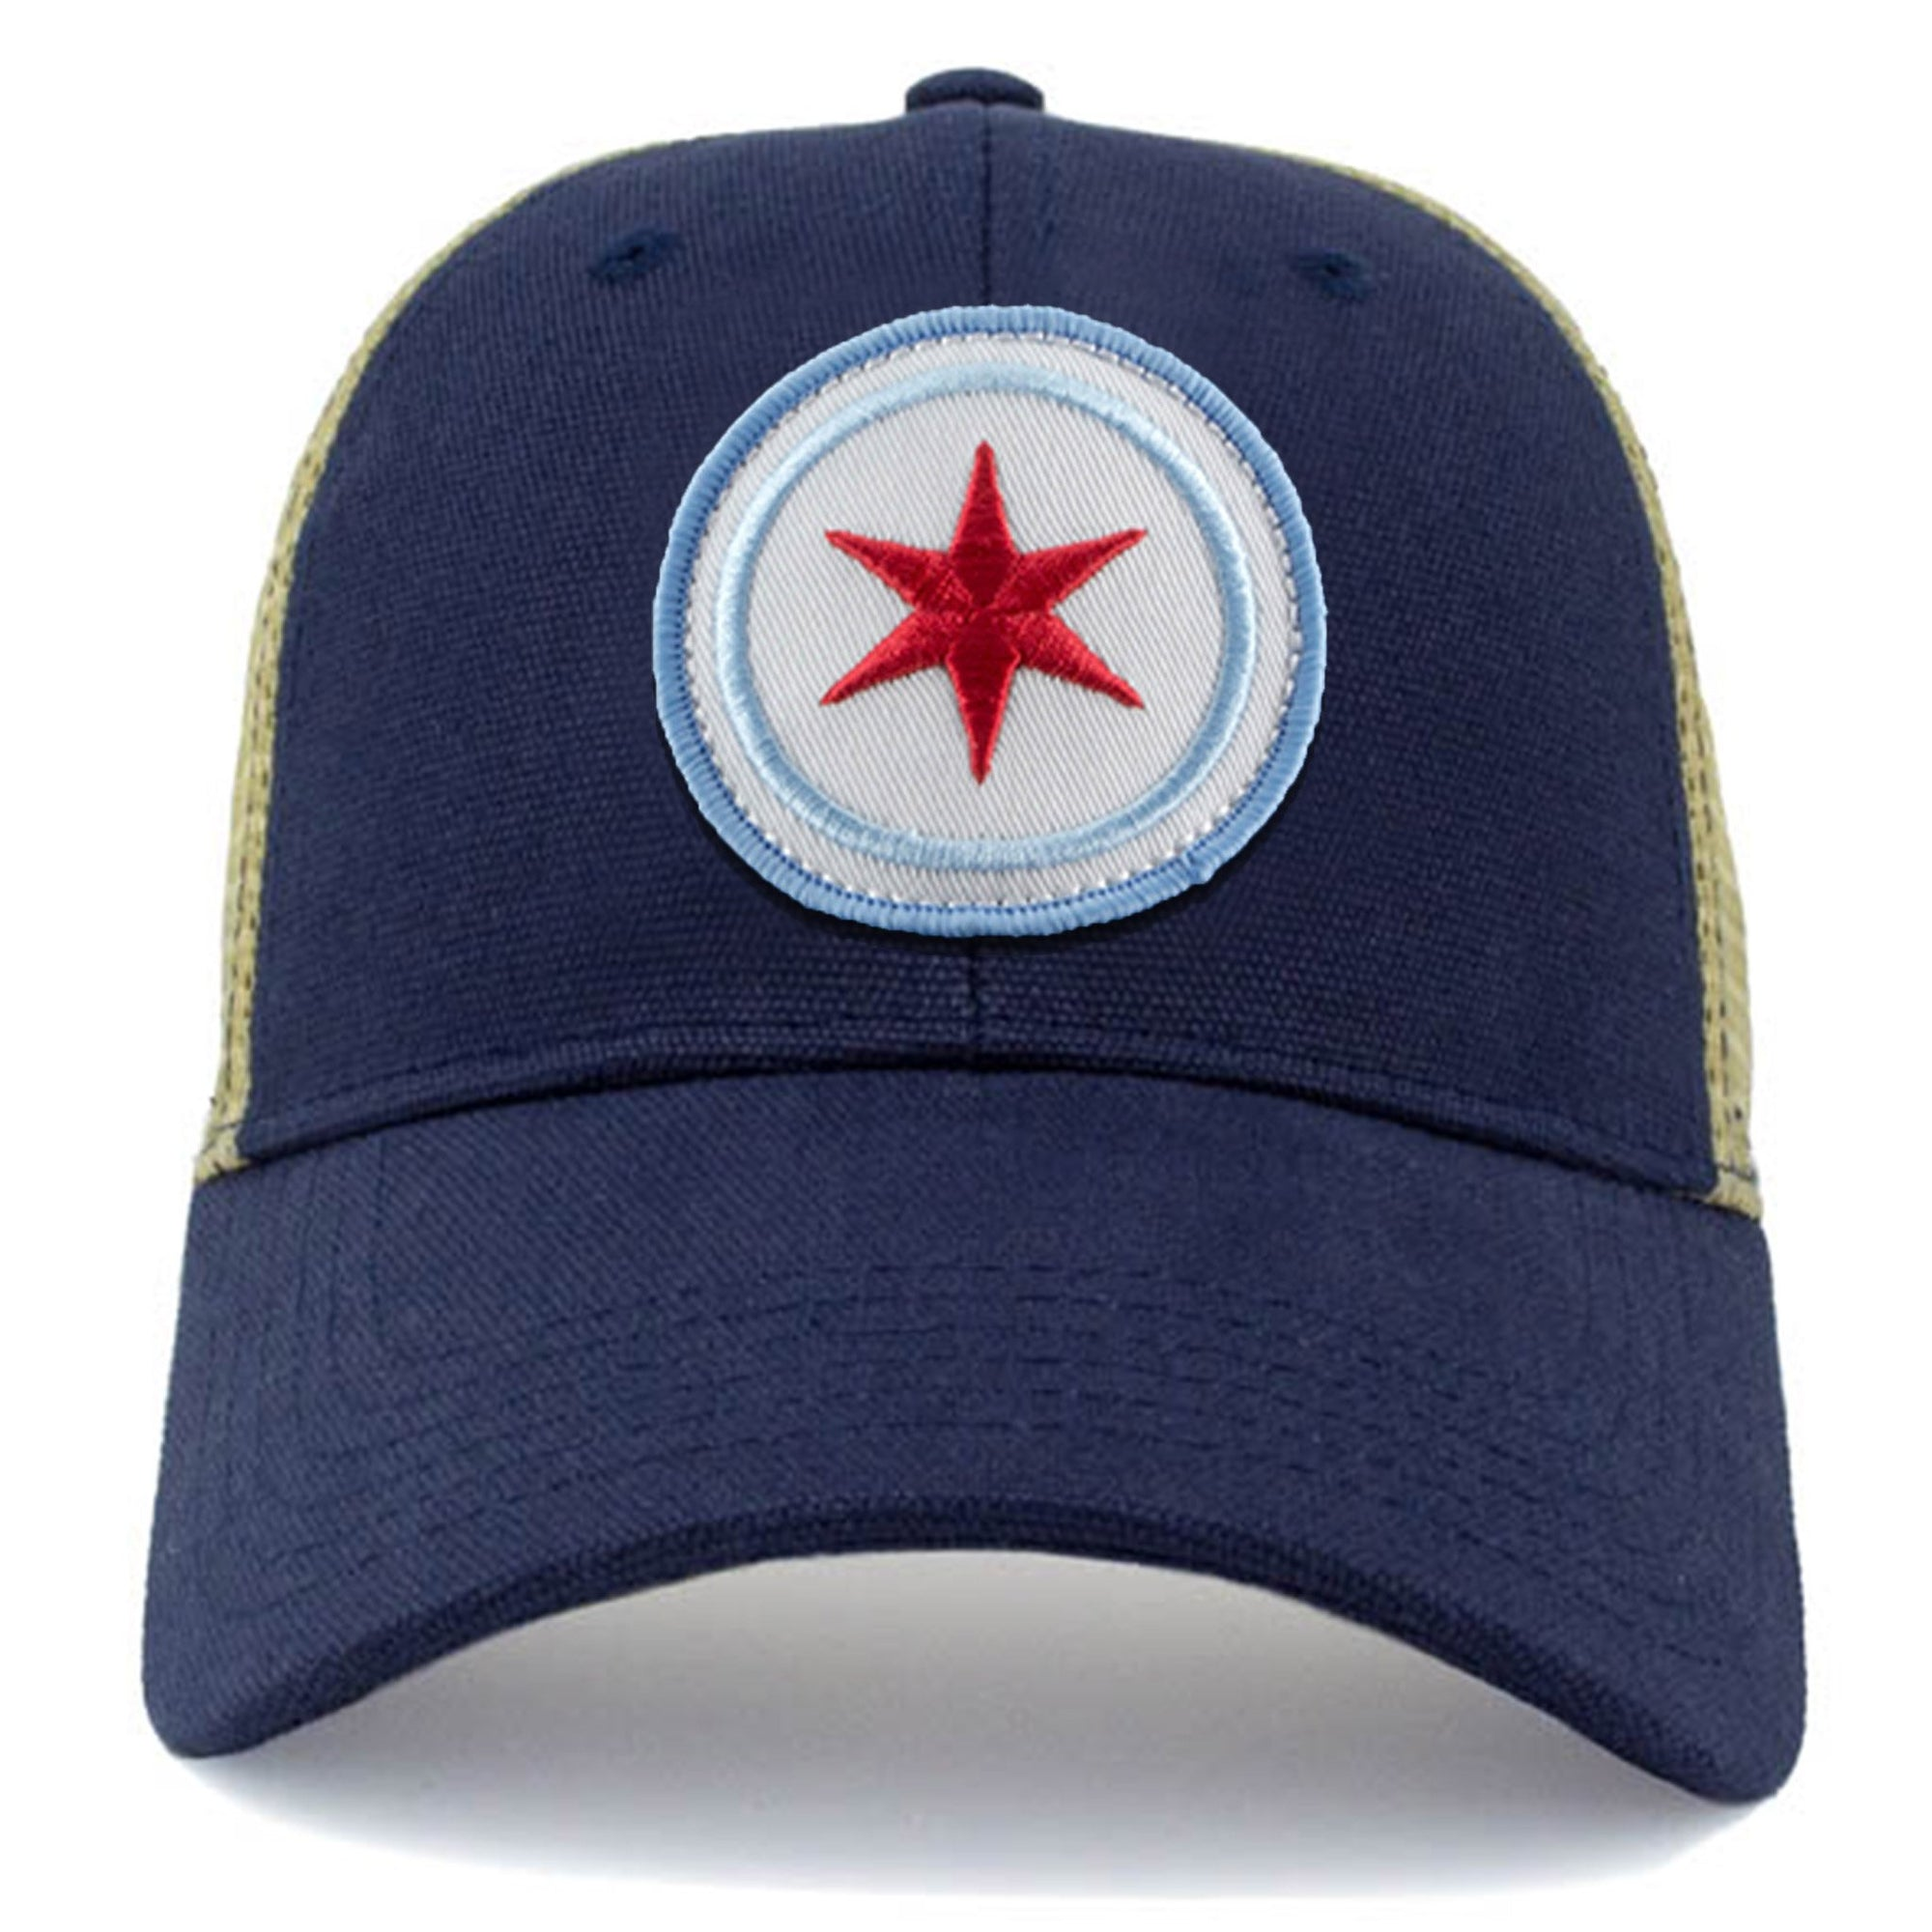 chicago vintage state flag cap with embroidered patch and classic mesh